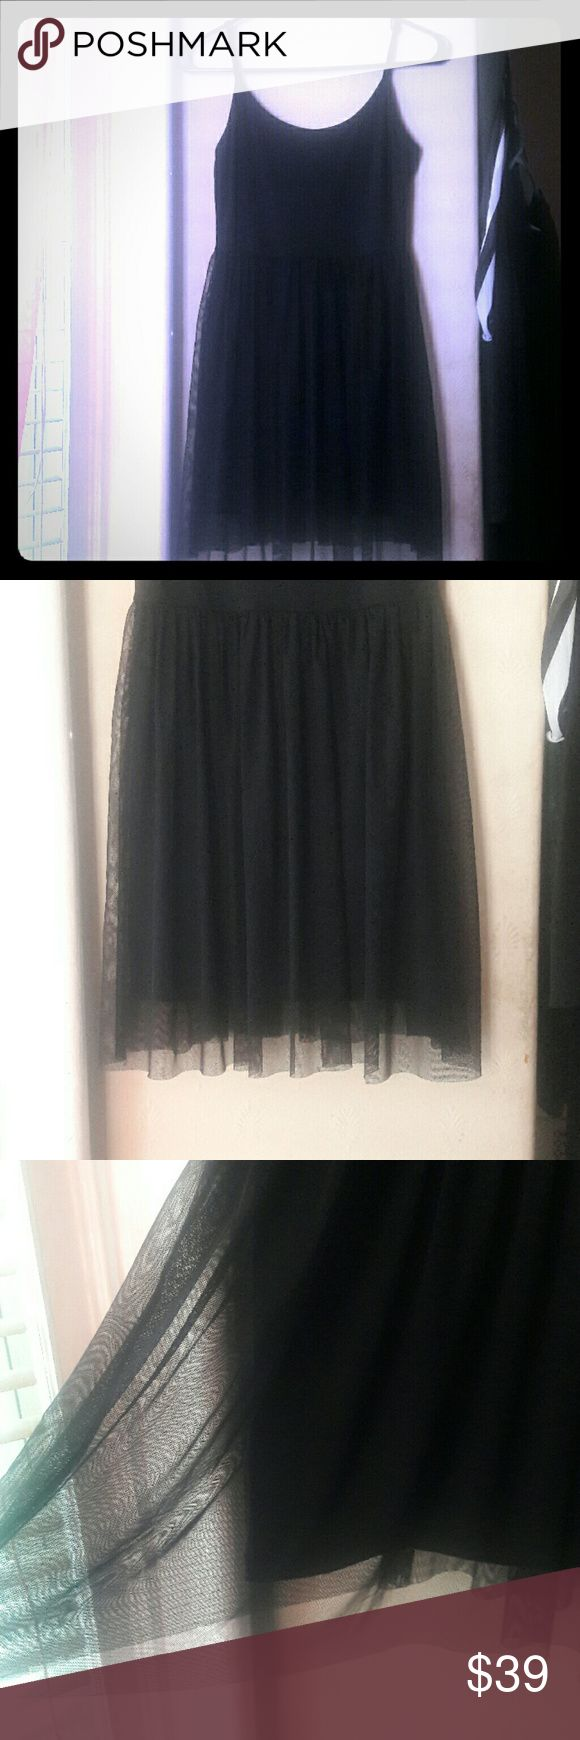 TOO SHOP PETITE BLACK DRESS SZ 4 (SM-MED) Super comfy and cute little black dress w tutu-like bottom. TOP SHOP.   Perfect for summer night's - dress up or down! Topshop Dresses Mini